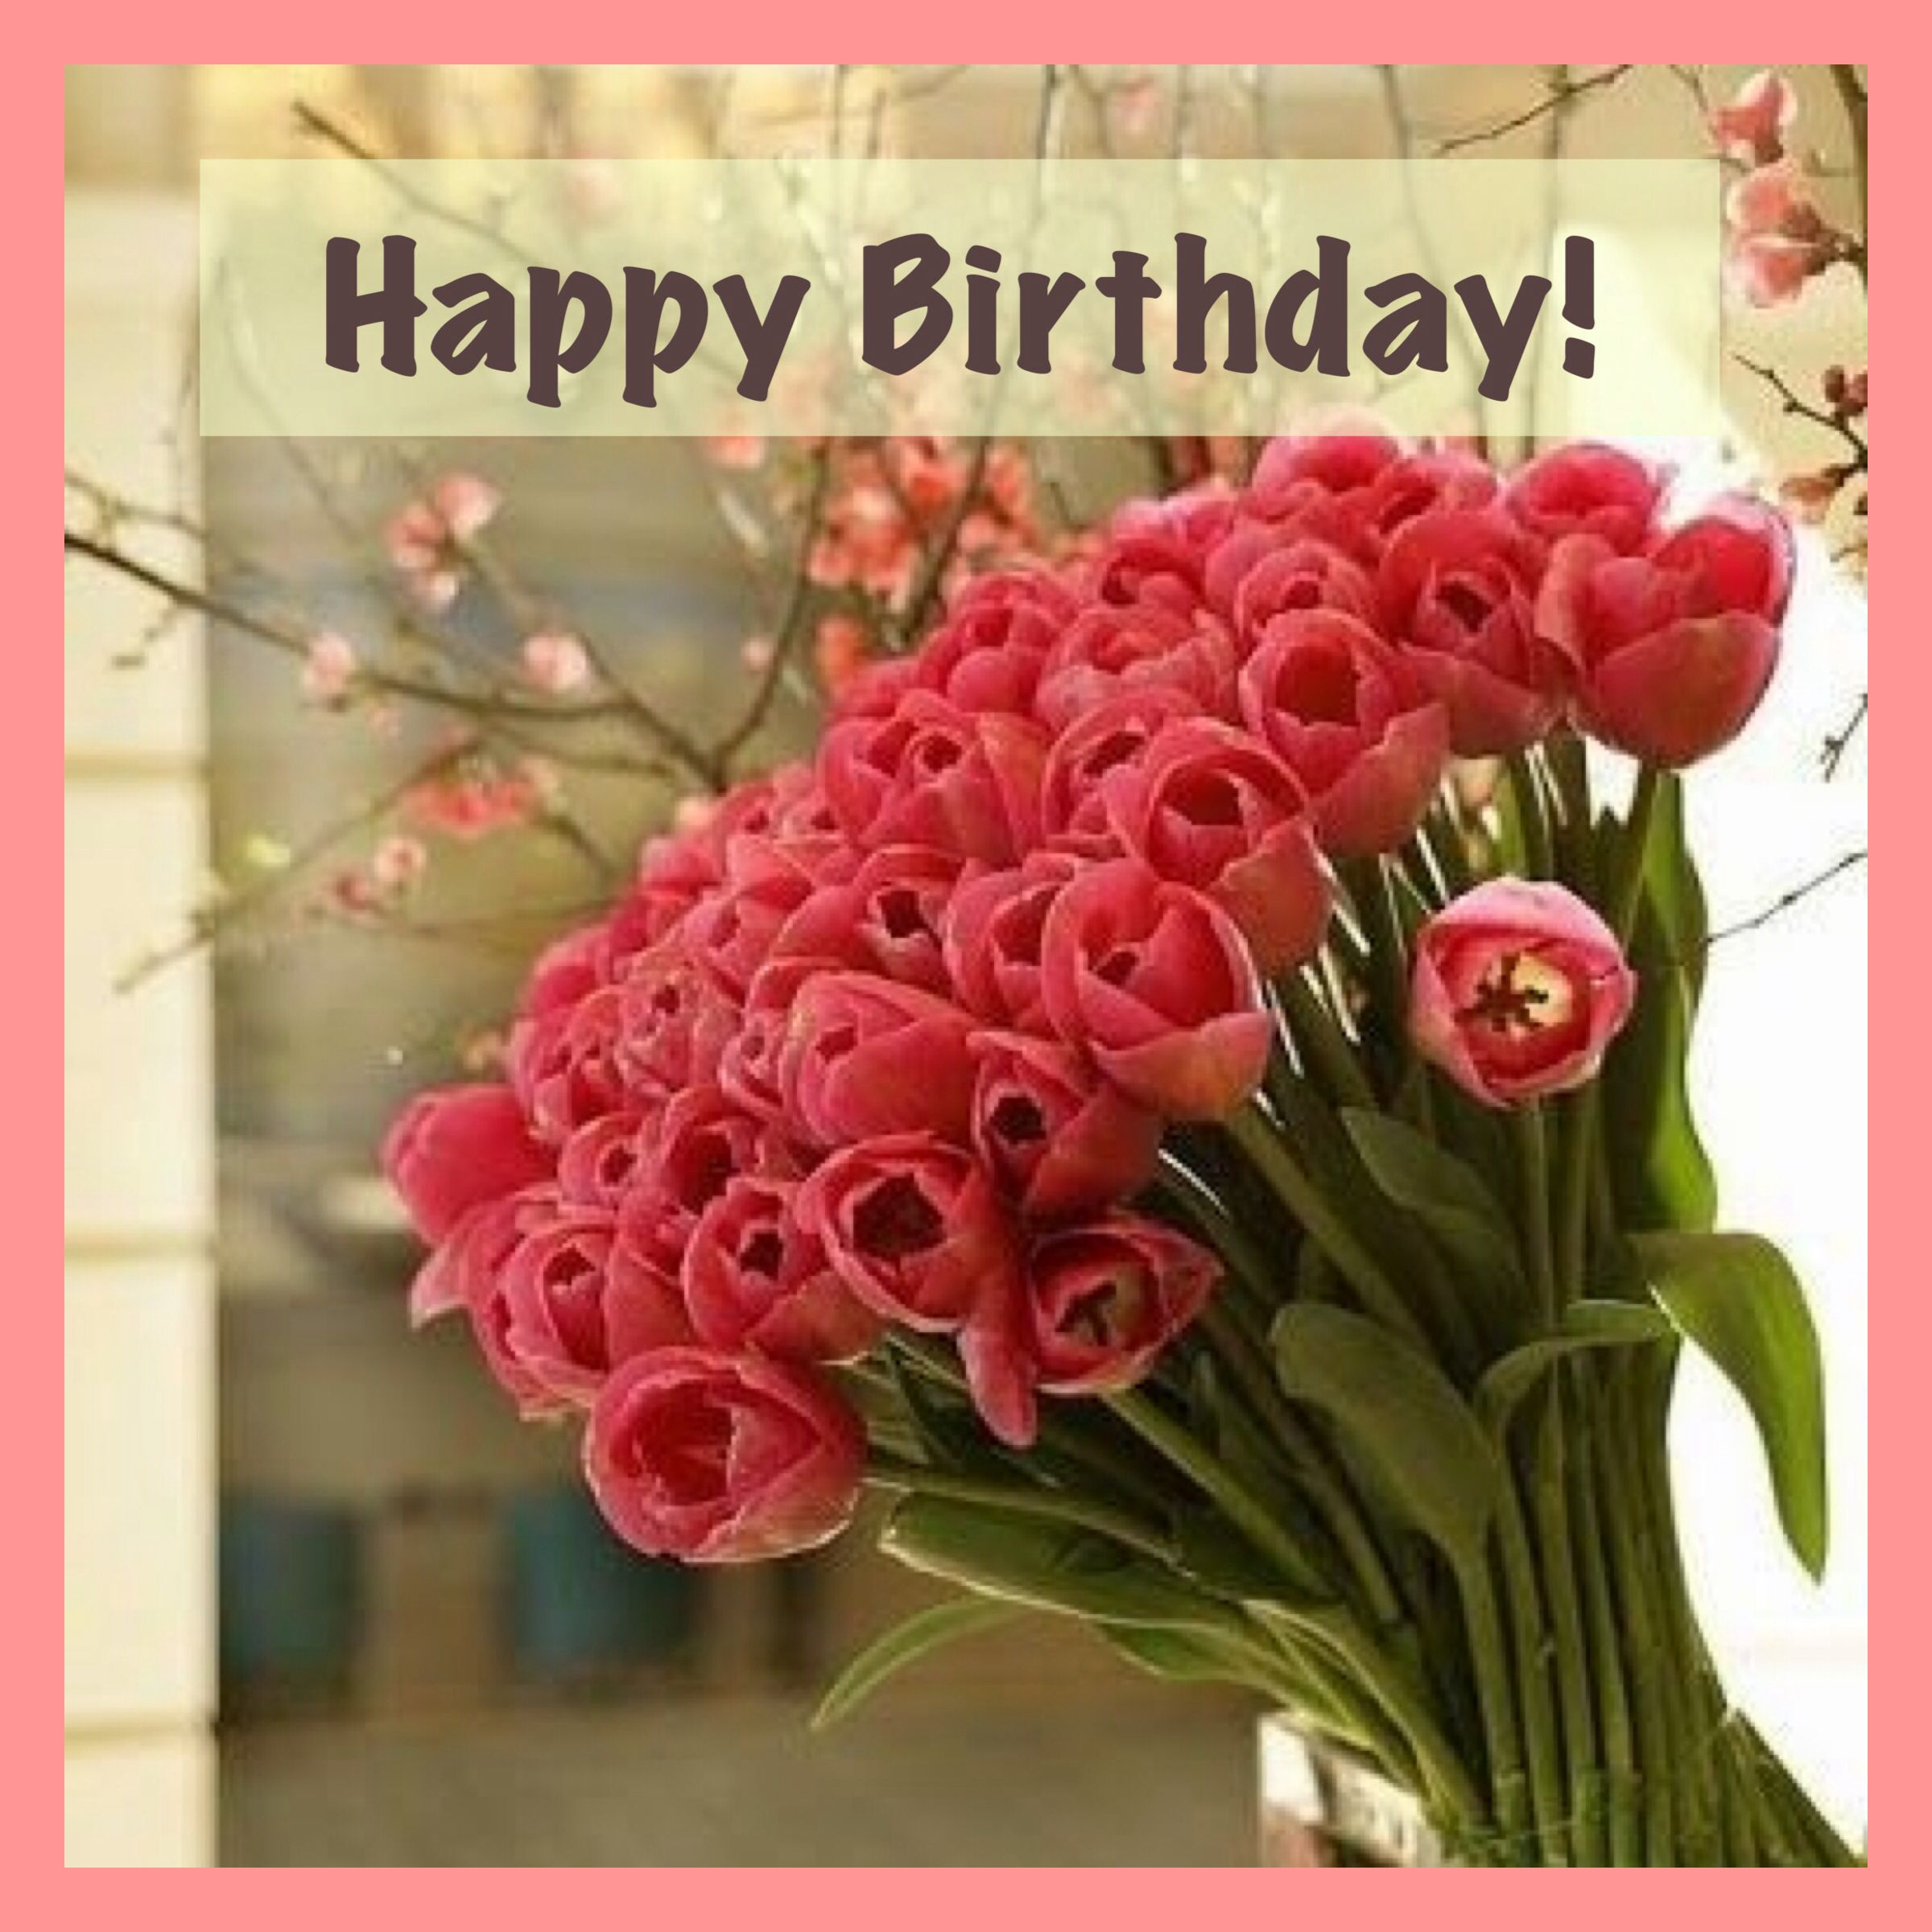 Birthday saludos pinterest happy birthday birthdays and birthday happy birthday happy birthday wishes birthday quotes happy birthday quotes birthday wishes happy birthday images happy birthday pictures izmirmasajfo Choice Image